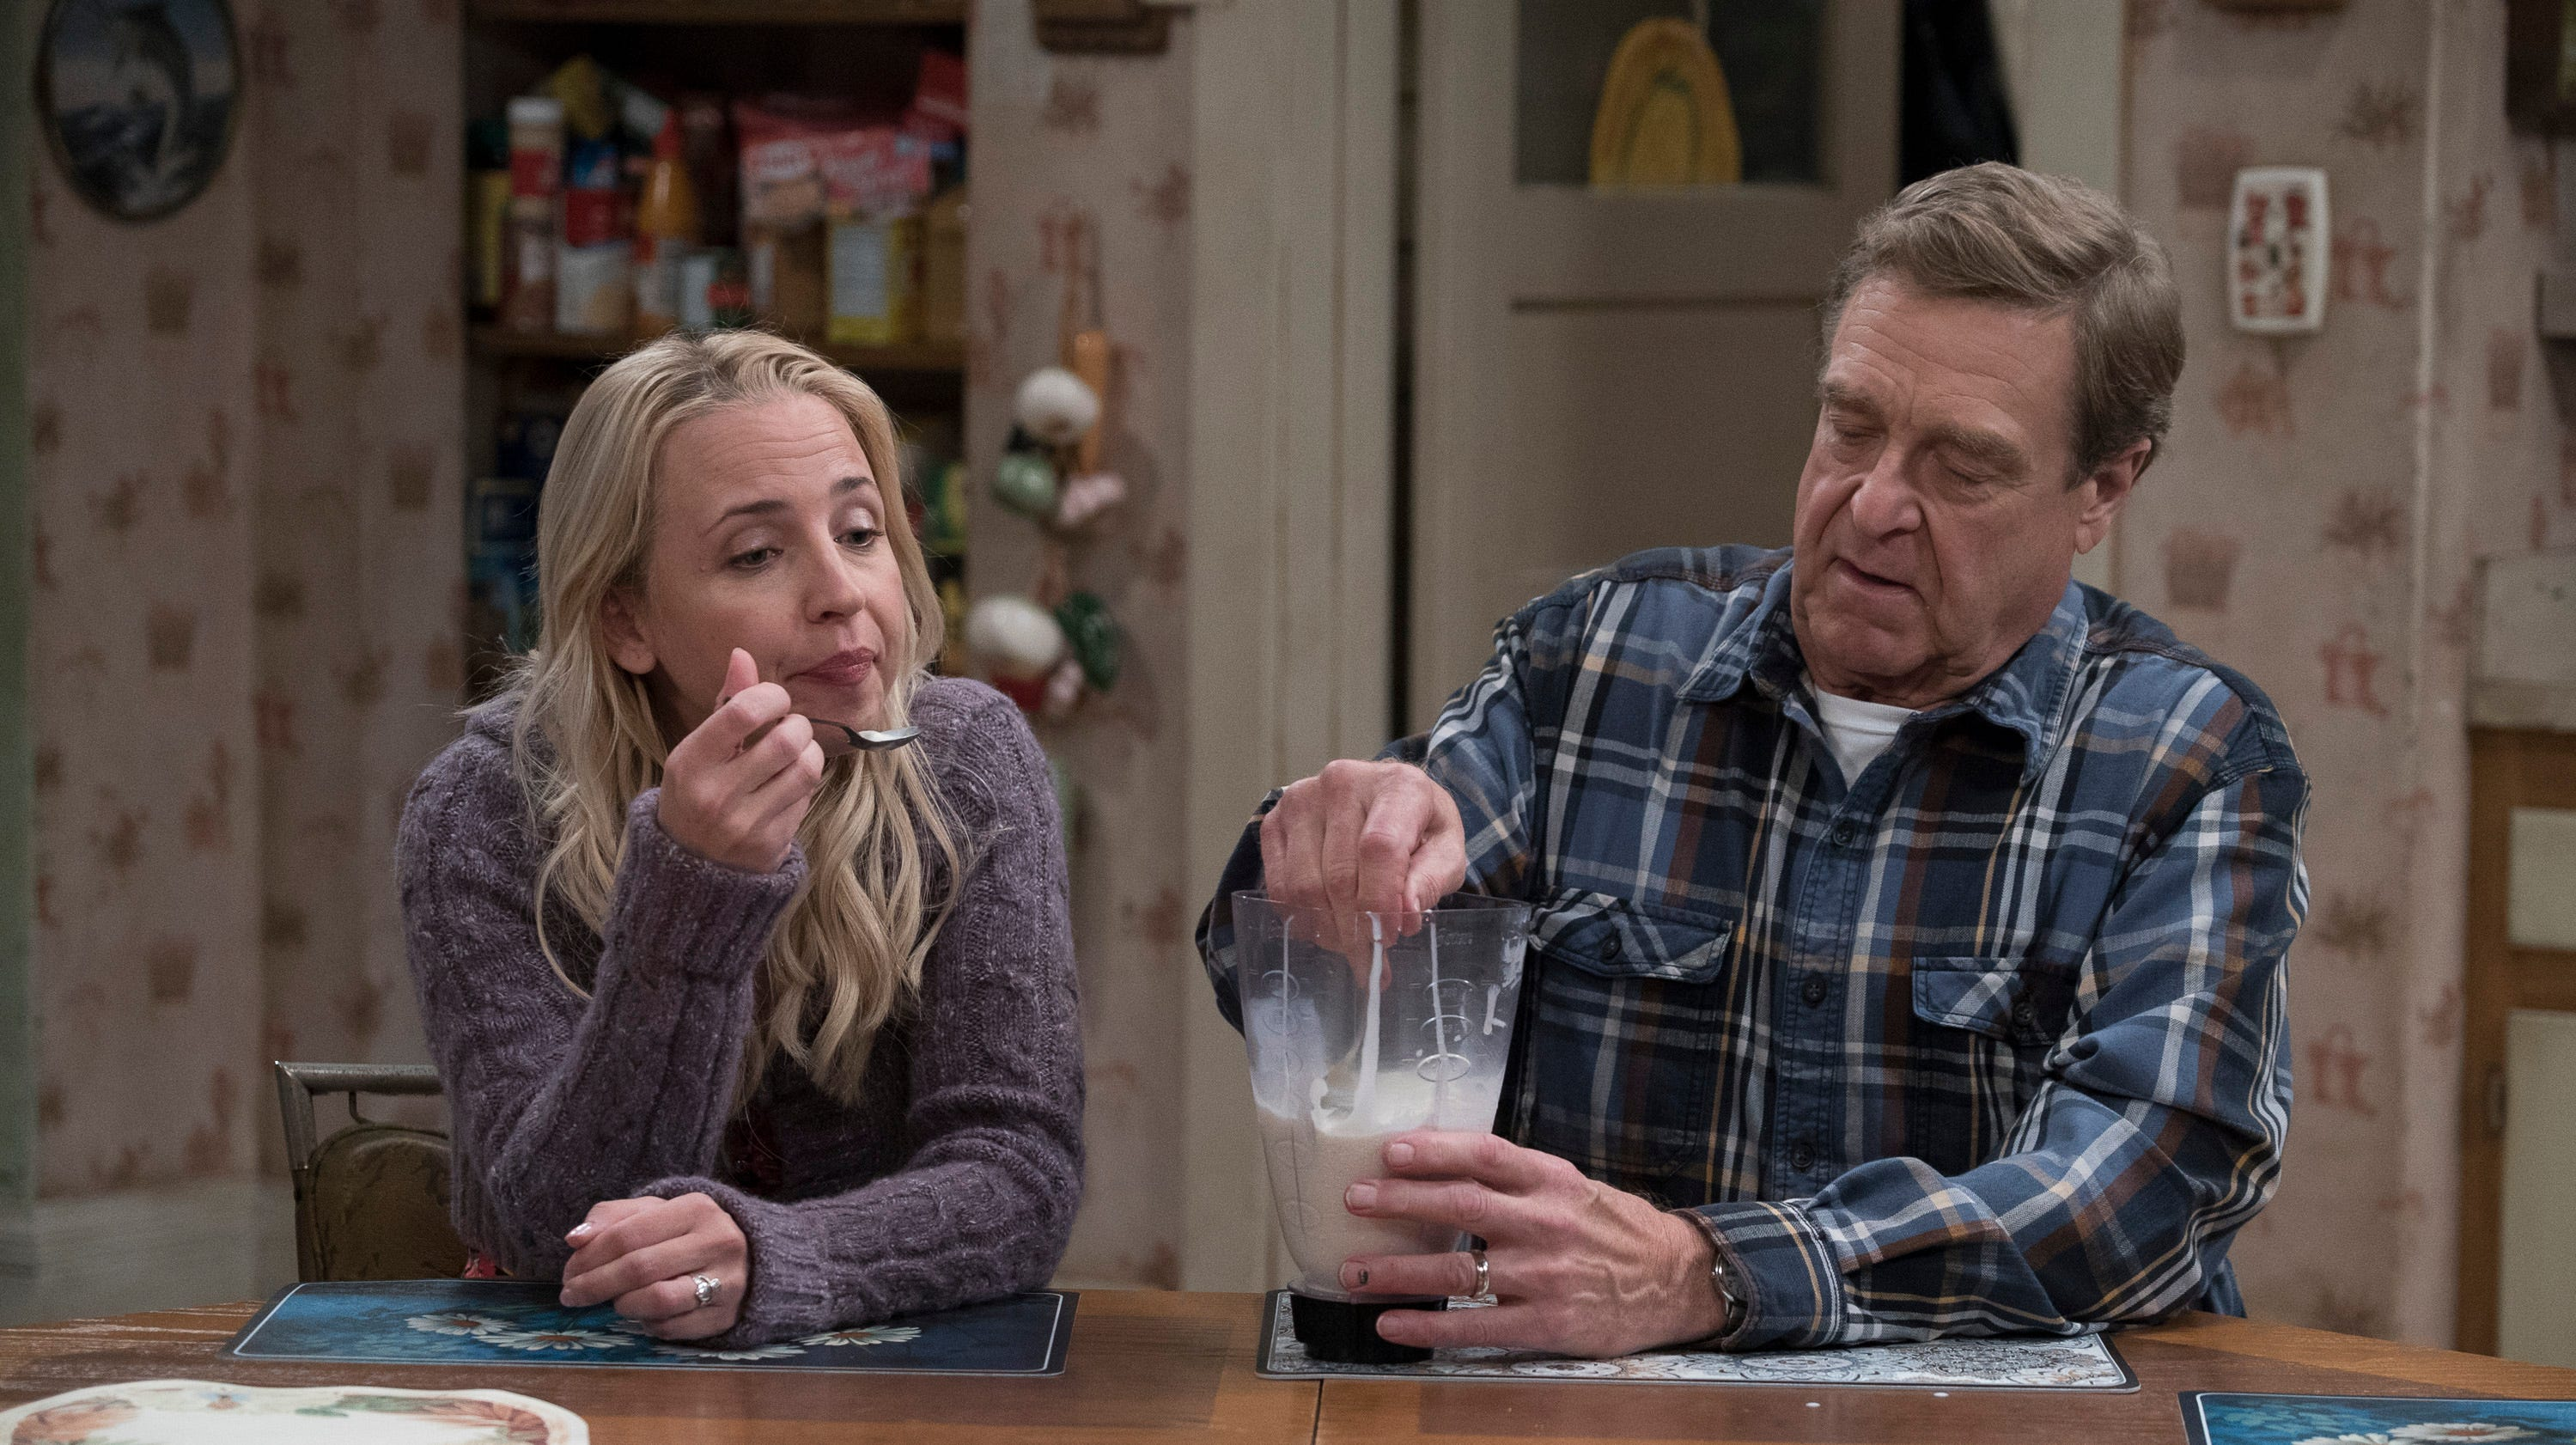 Becky Conner (Lecy Goranson), left, and her father, Dan (John Goodman), have big family news to talk about in Tuesday's episode of ABC's 'The Conners.'